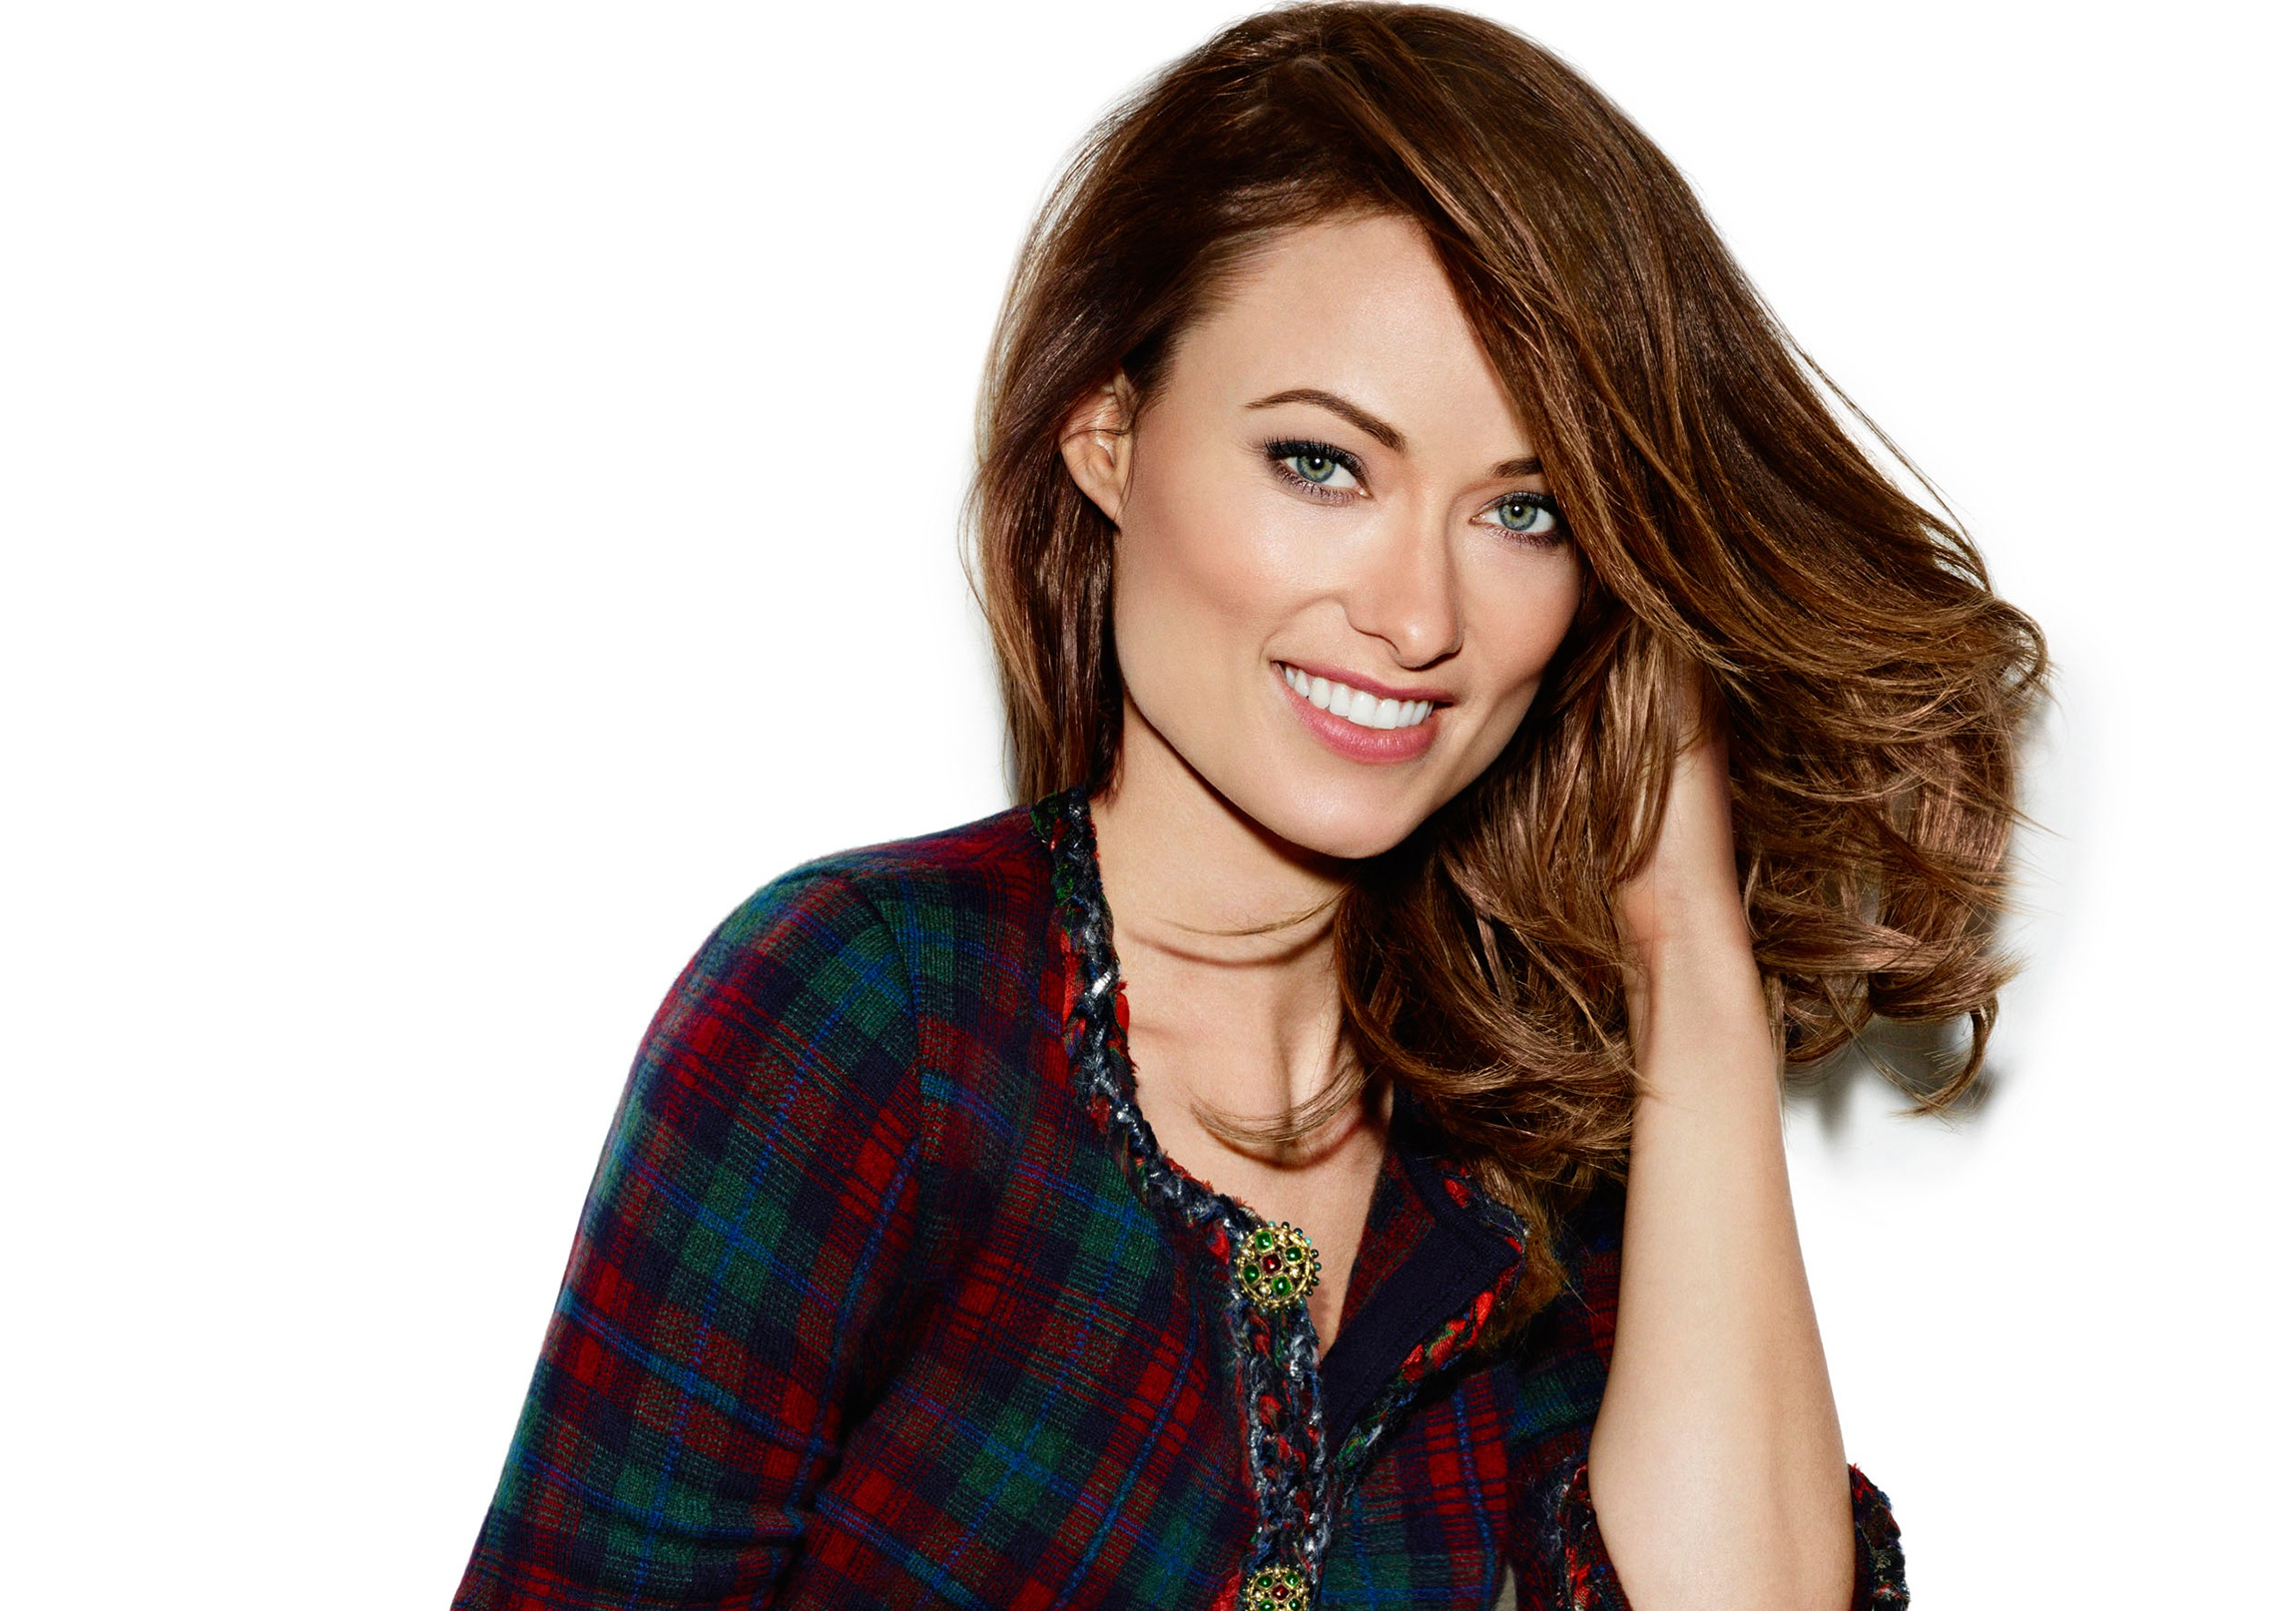 beautiful height definition olivia wilde image